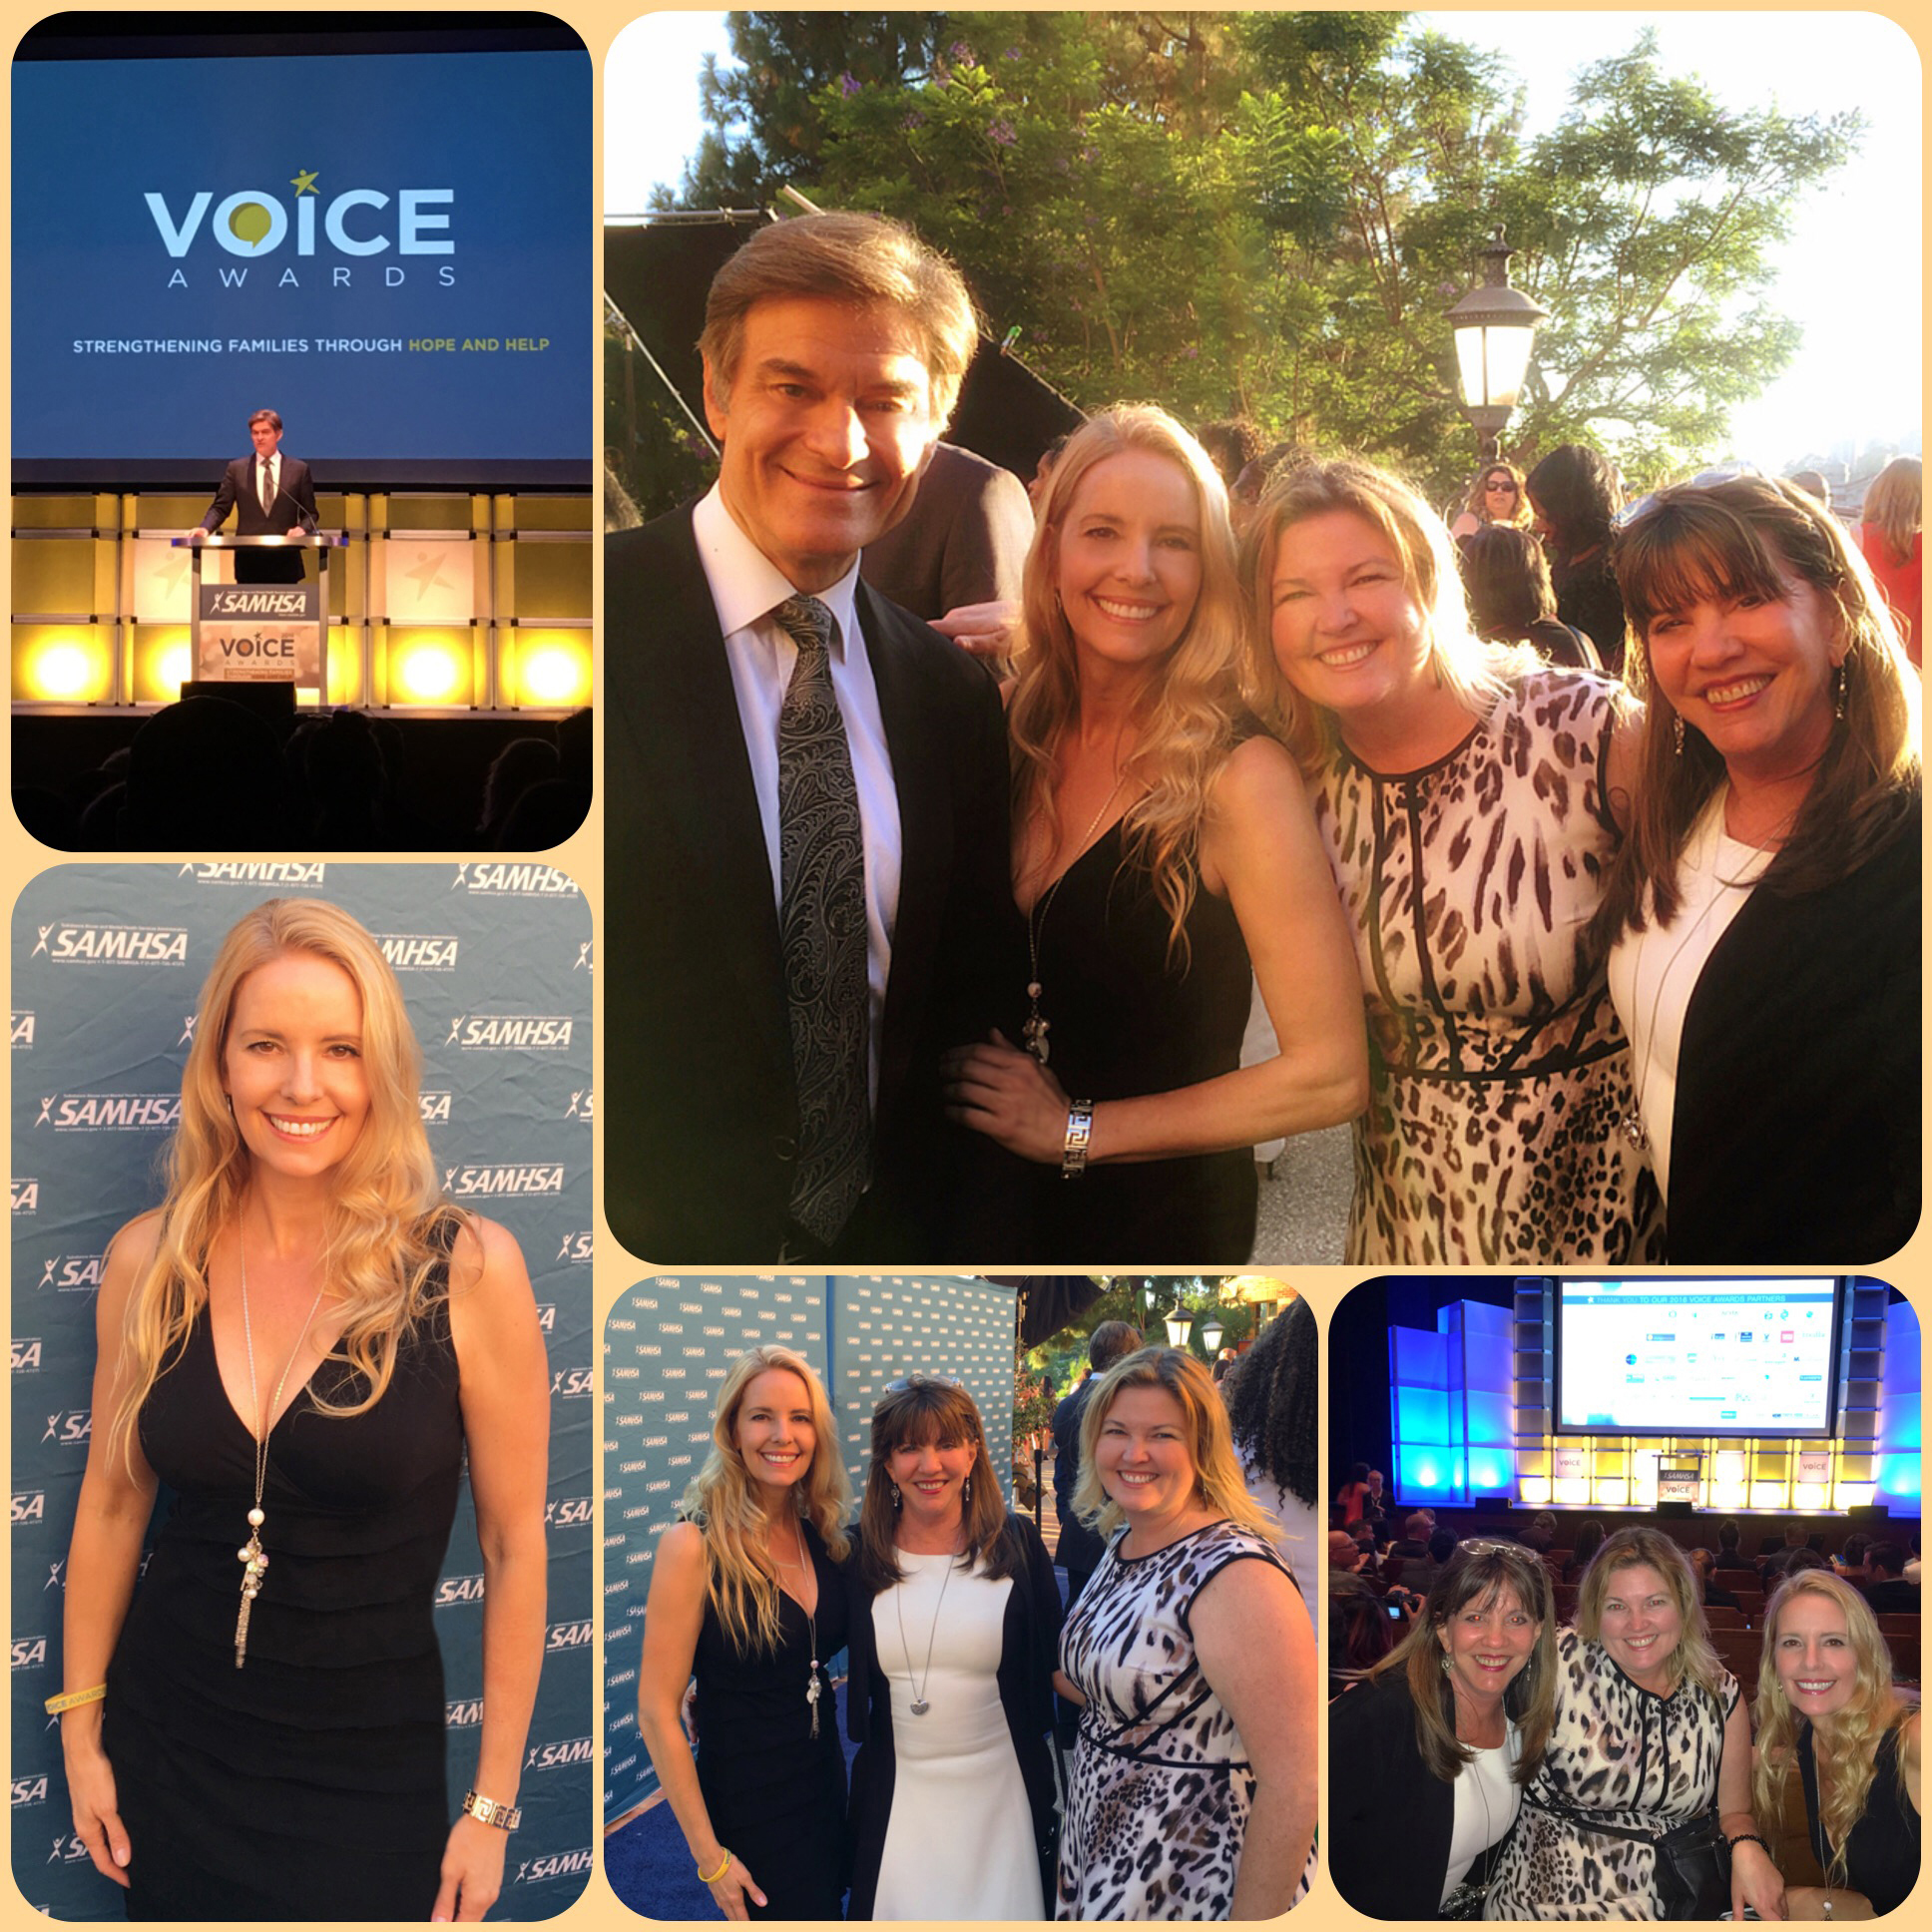 VOICE AWARDS with Dr. Oz